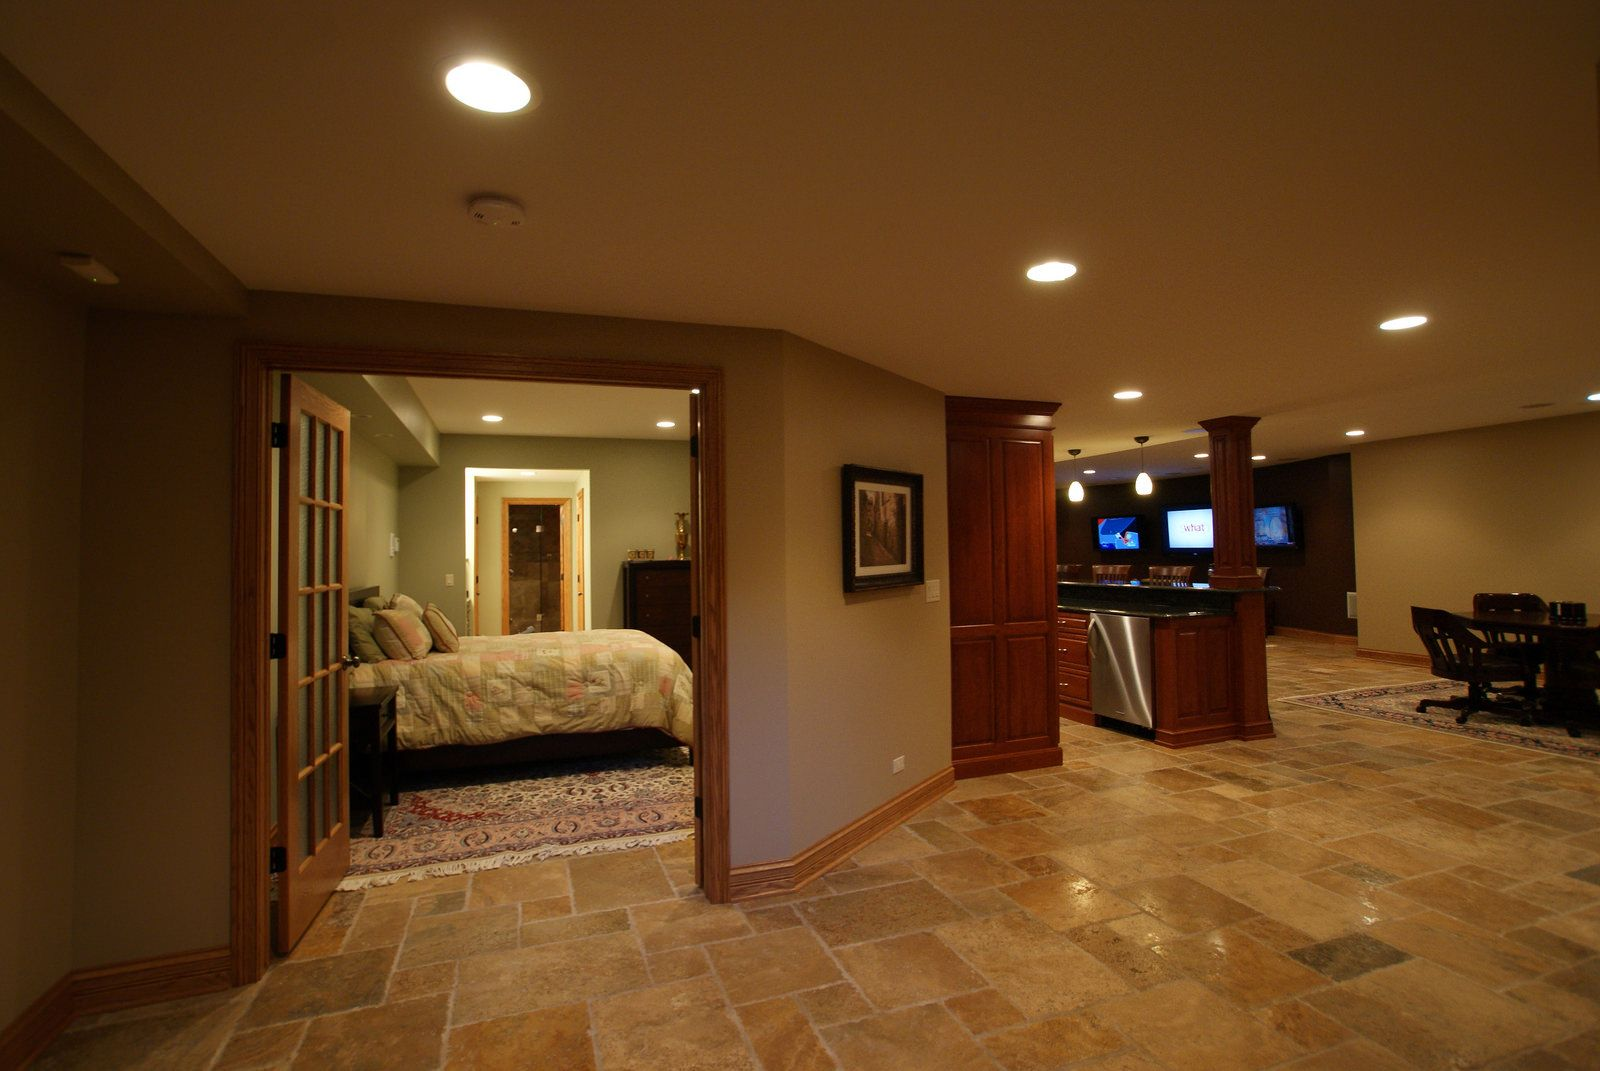 Remodeling Basement Ideas Simple Amazing Marietta Basement Remodels Room Additions Georgia Also Review